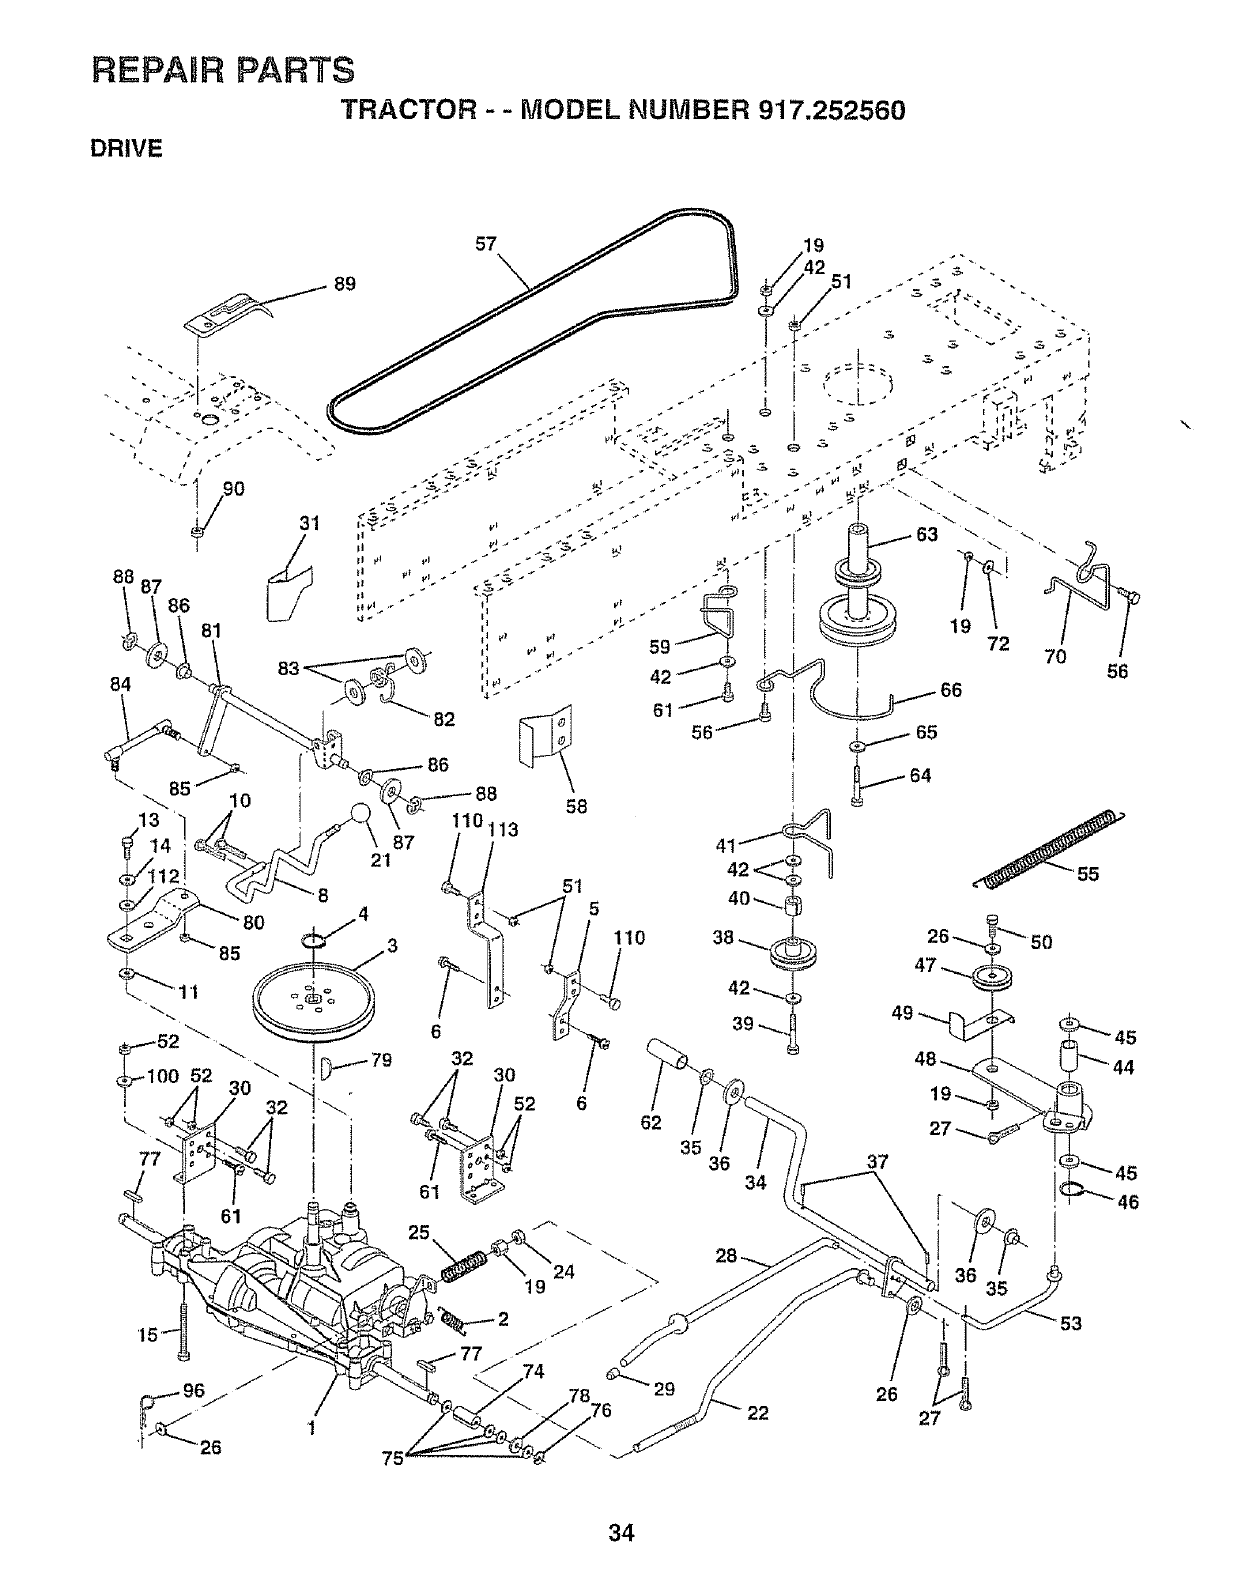 Page 34 of Craftsman Lawn Mower 917.252560 User Guide